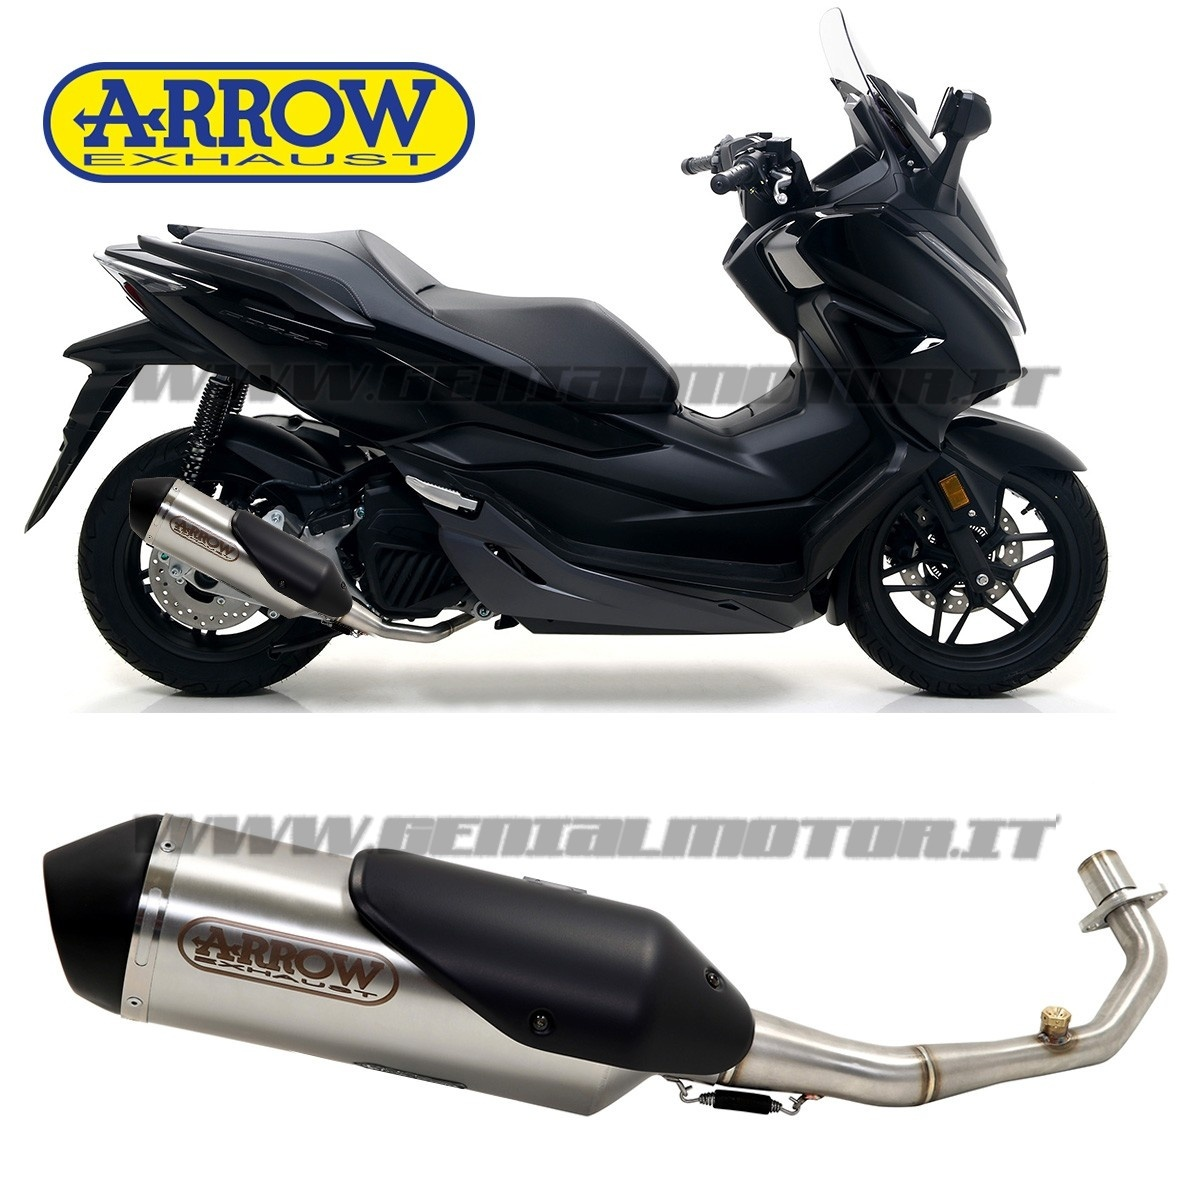 Details about Exhaust Arrow Approved Urban Steel Honda Forza 125 2019 19